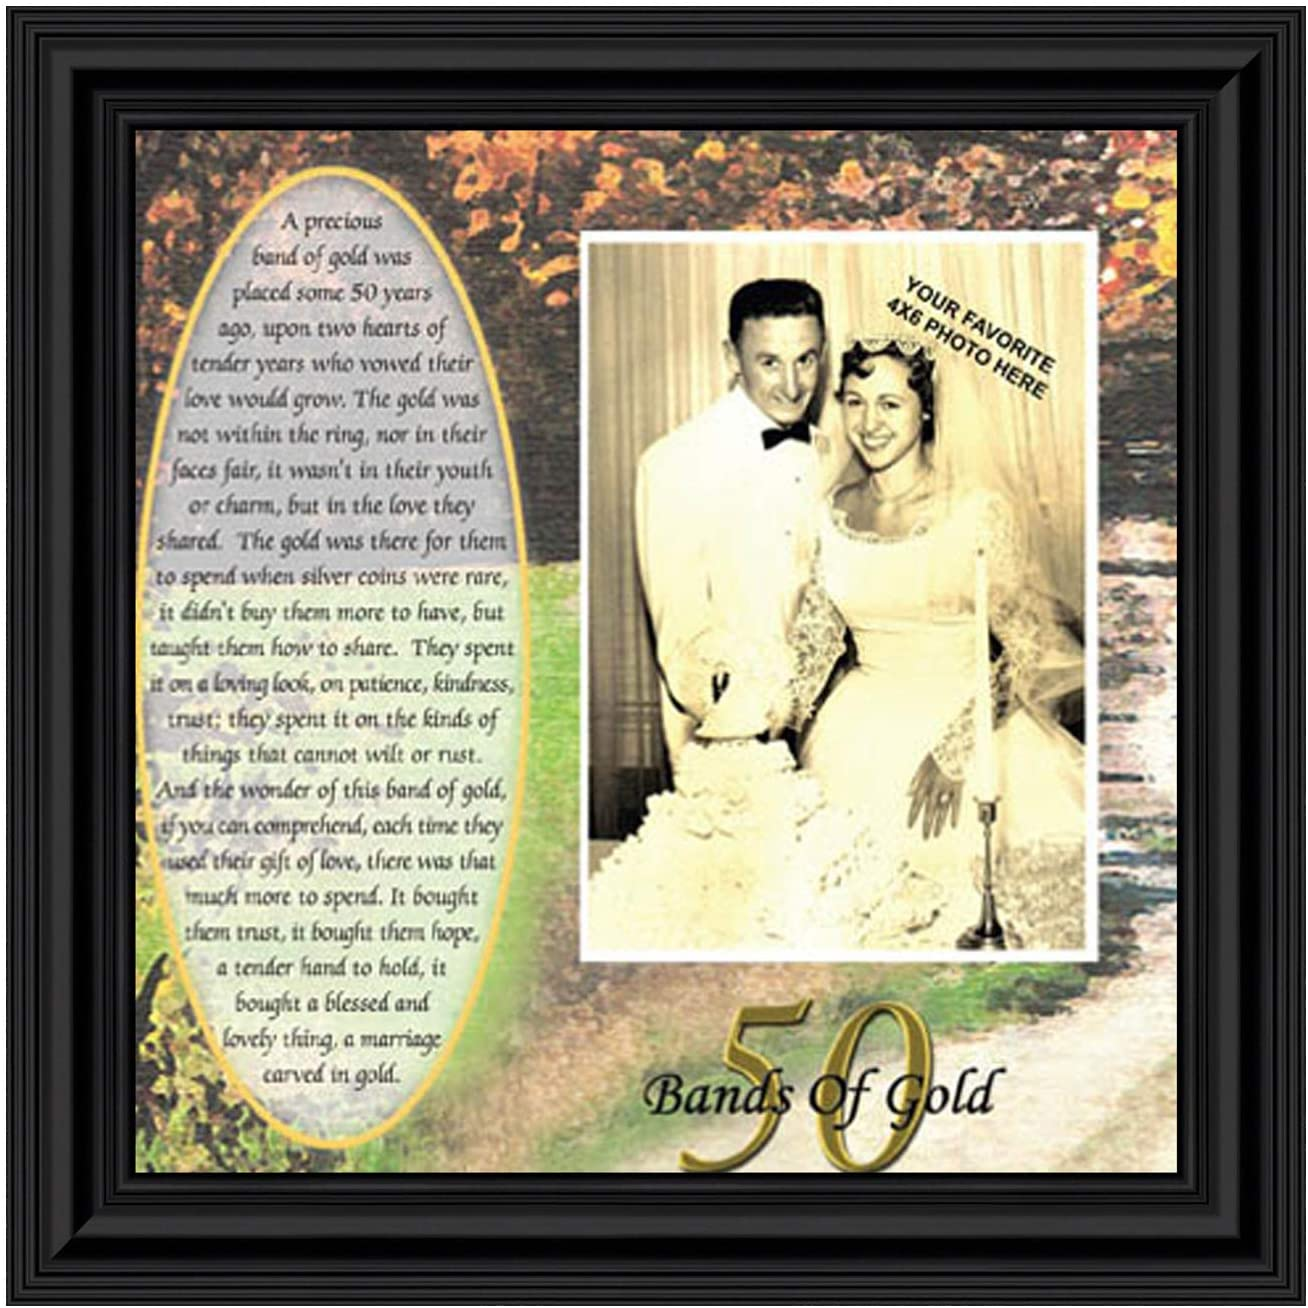 Crossroads Home Décor Bands of Gold, Personalized 50th Wedding Picture Frame, 6779B